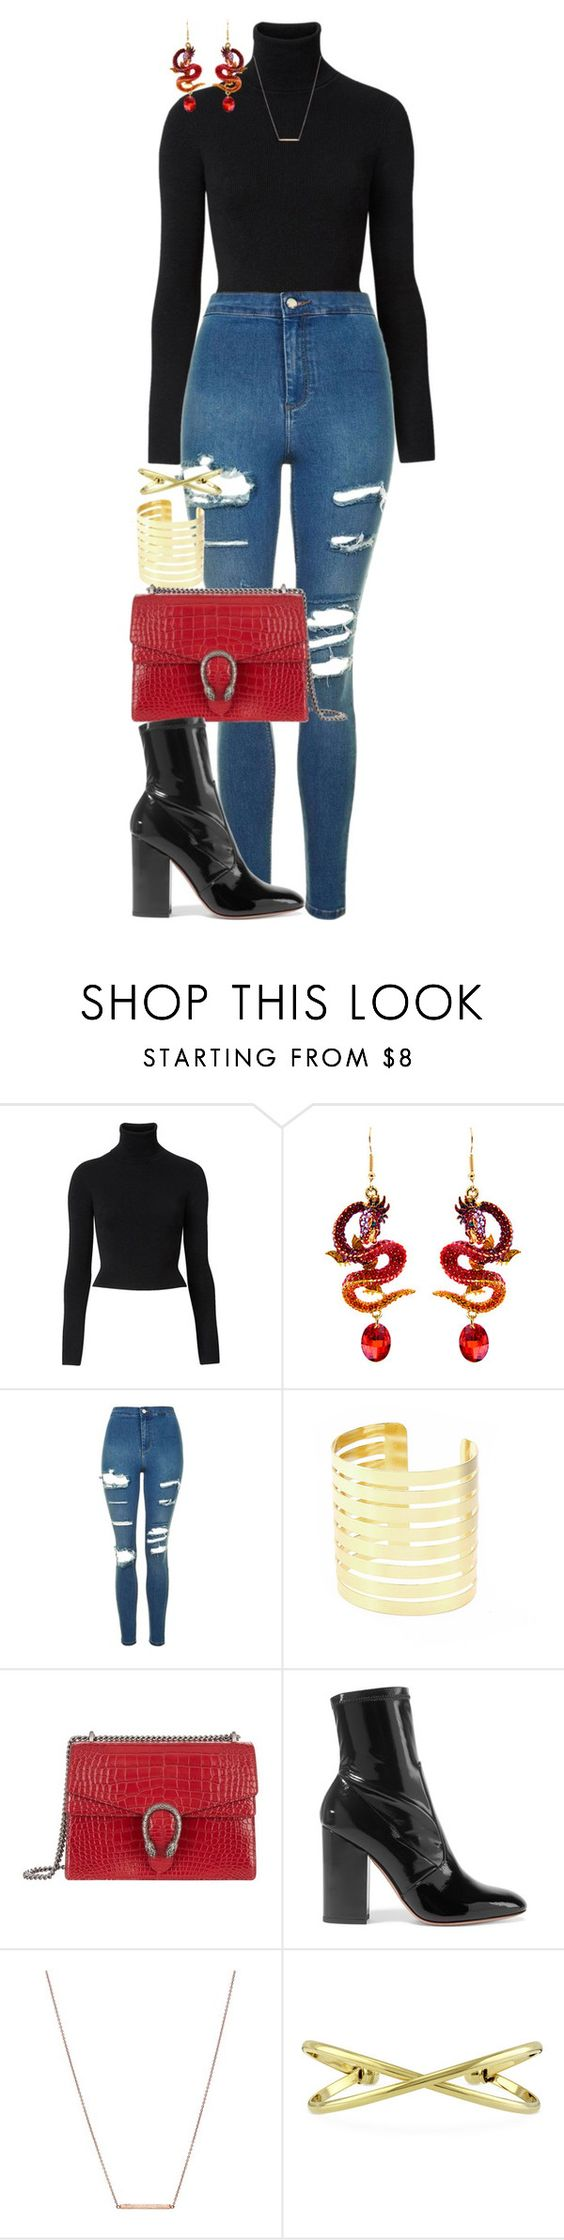 """""""By the pricking of my thumbs,  Something wicked this way comes."""" by quiche ❤ liked on Polyvore featuring Witchery, Topshop, Gucci, Valentino, Bungalow 20 and BERRICLE"""